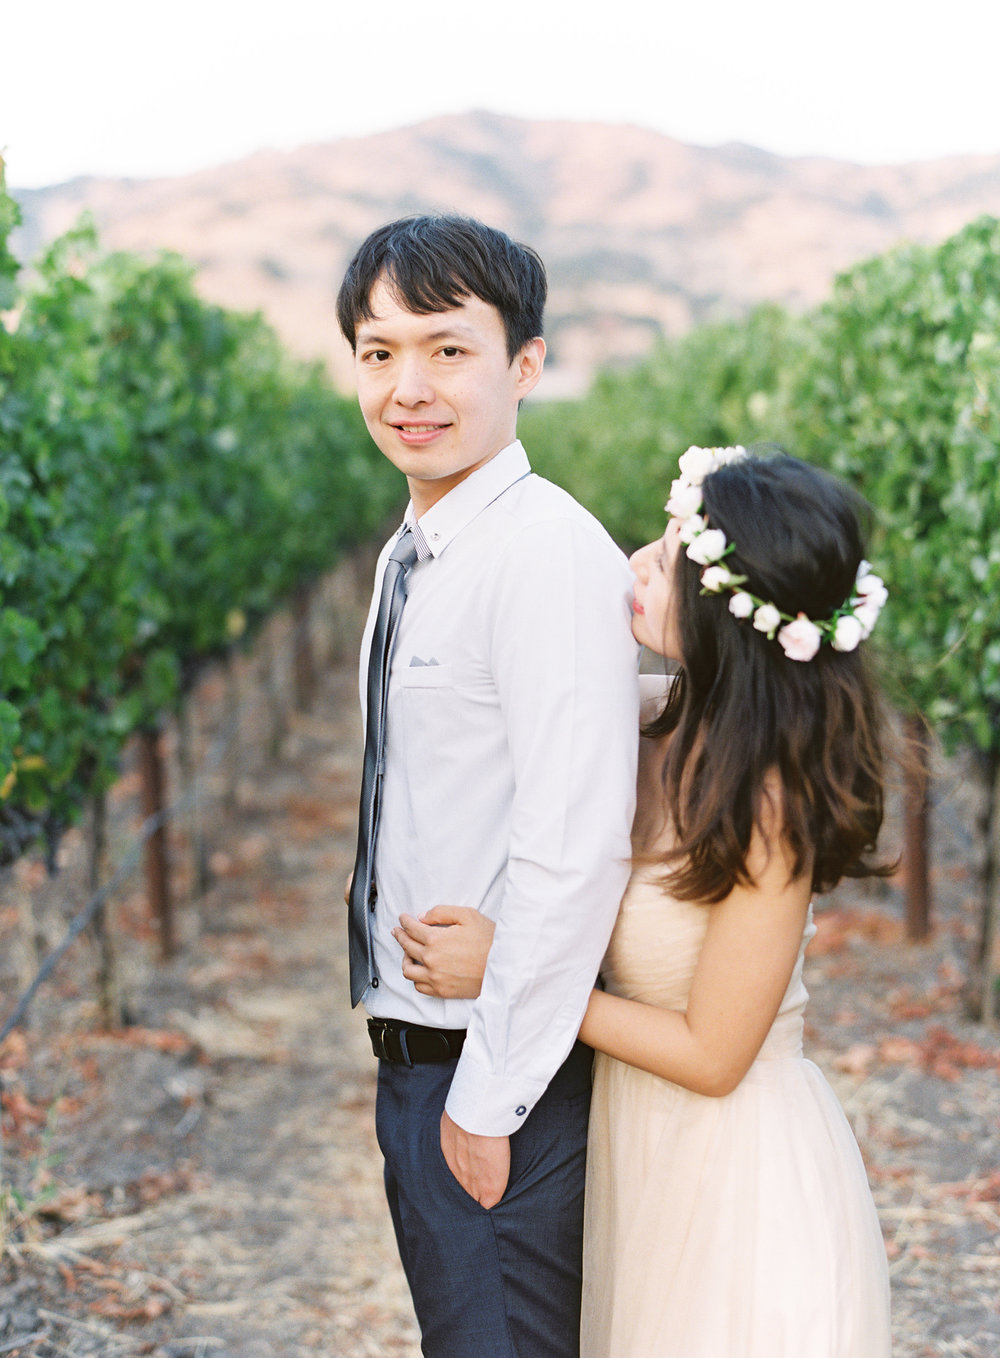 Napa-California-engagement-session-24.jpg